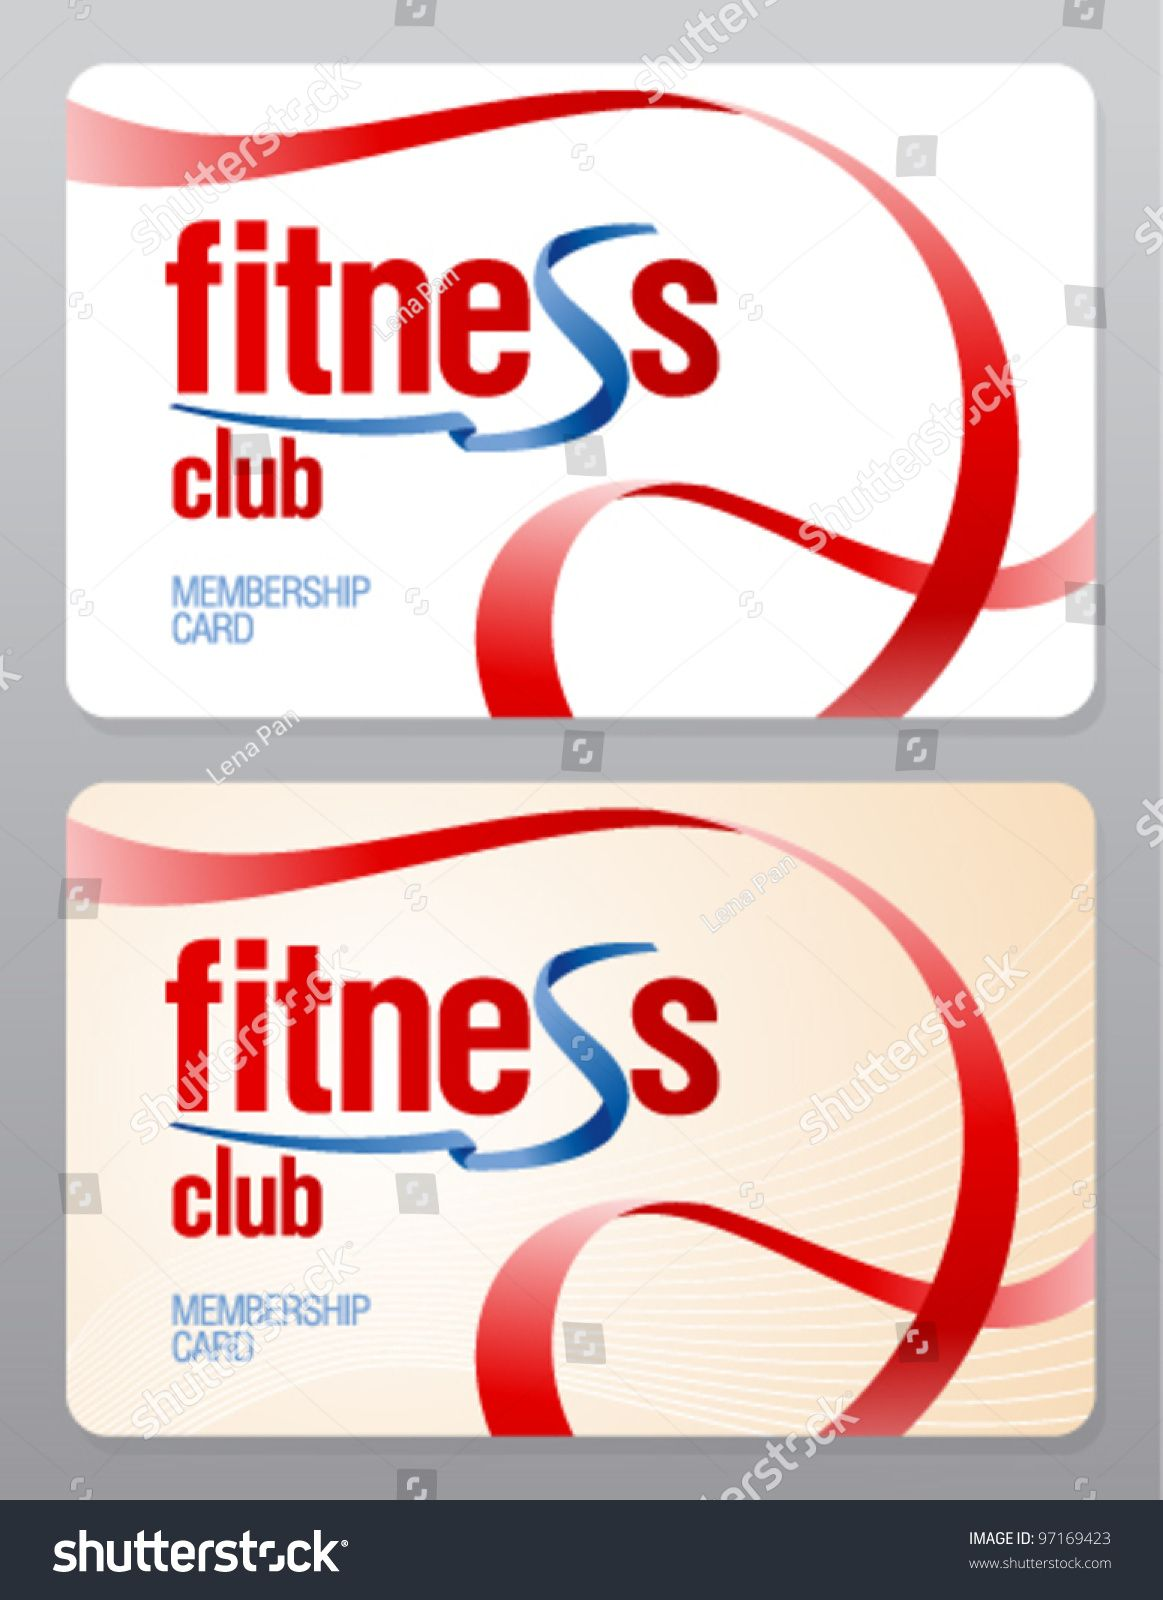 Gym Membership Images Stock Photos Vectors Shutterstock Throughout Gym Membership Card Template Be Gym Membership Card Membership Card Business Template